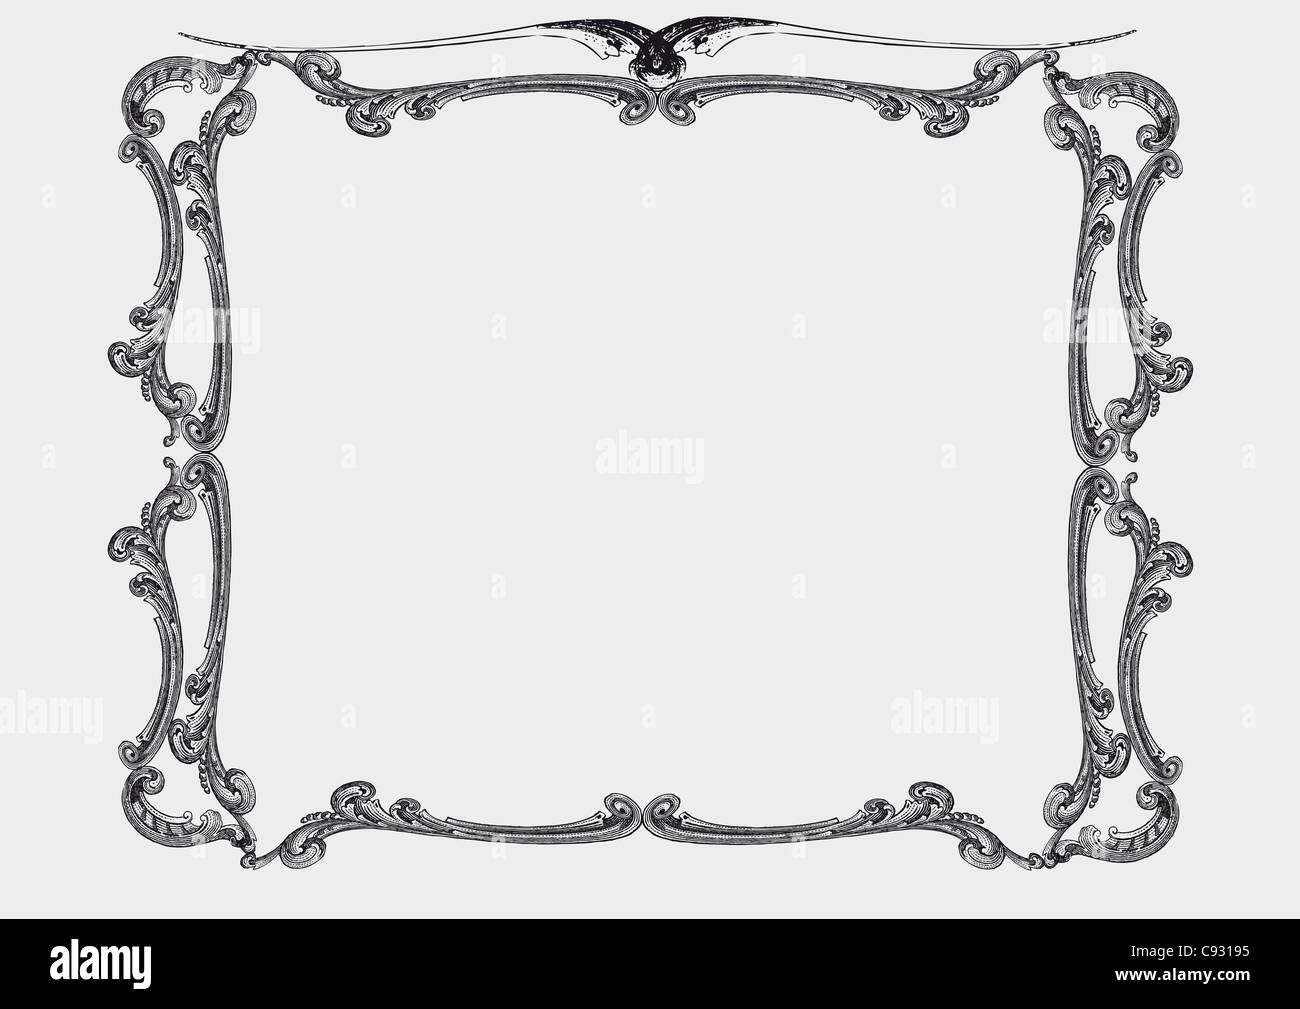 Old frame in vintage style - Stock Image